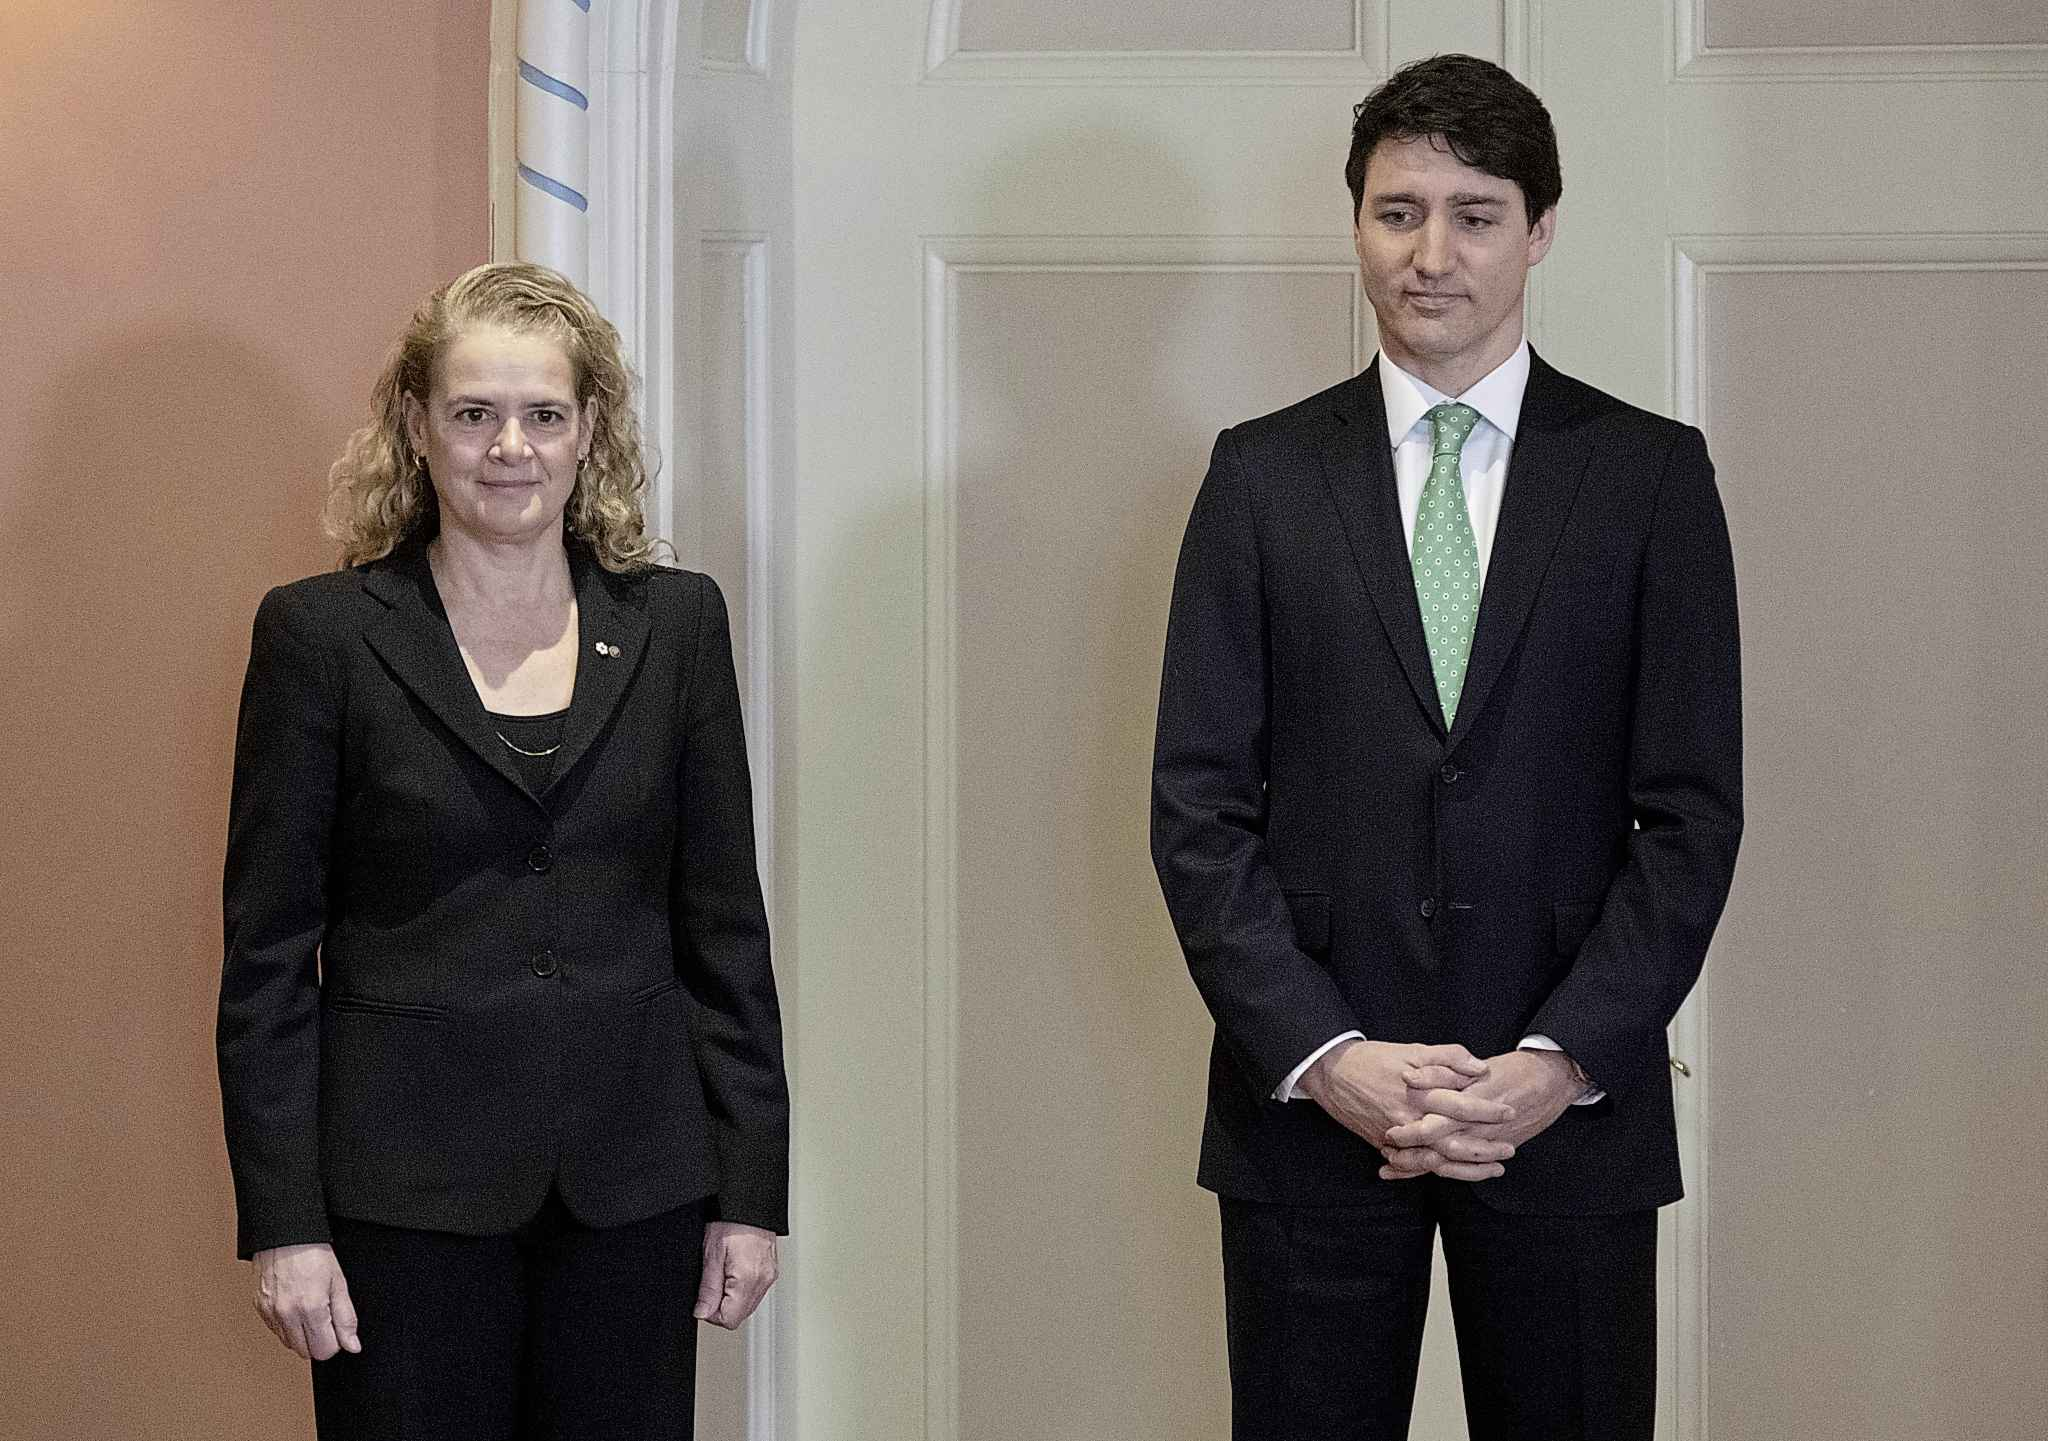 If no party secures a majority, Gov. Gen. Julie Payette may ask Justin Trudeau to form government because under Canada's parliamentary system, prime ministers remain in office throughout elections and retain power until they lose the confidence of the House. (Justin Tang / The Canadian Press files)